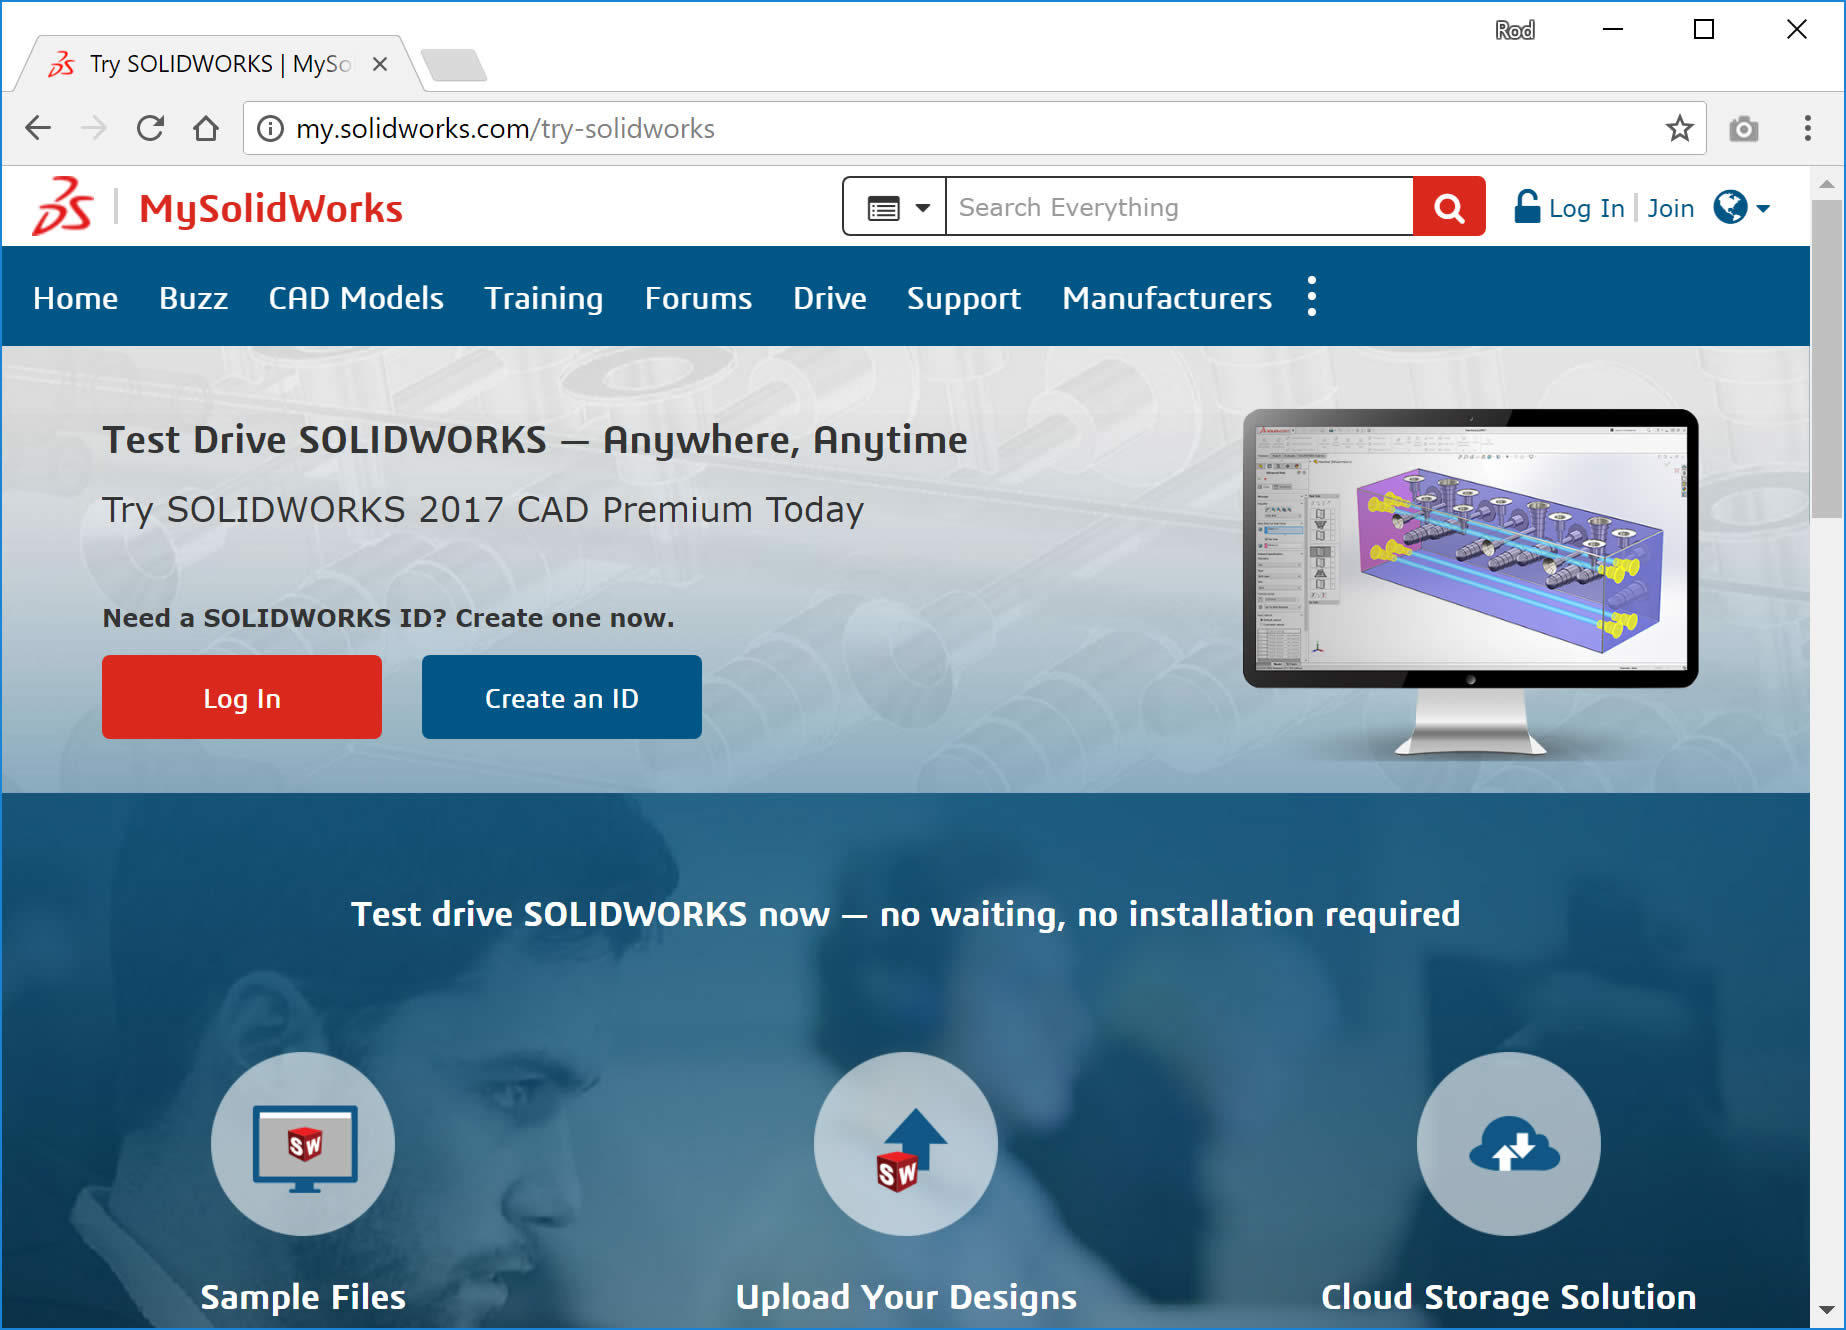 Solidworks visualize free trial available online with mysolidworks.